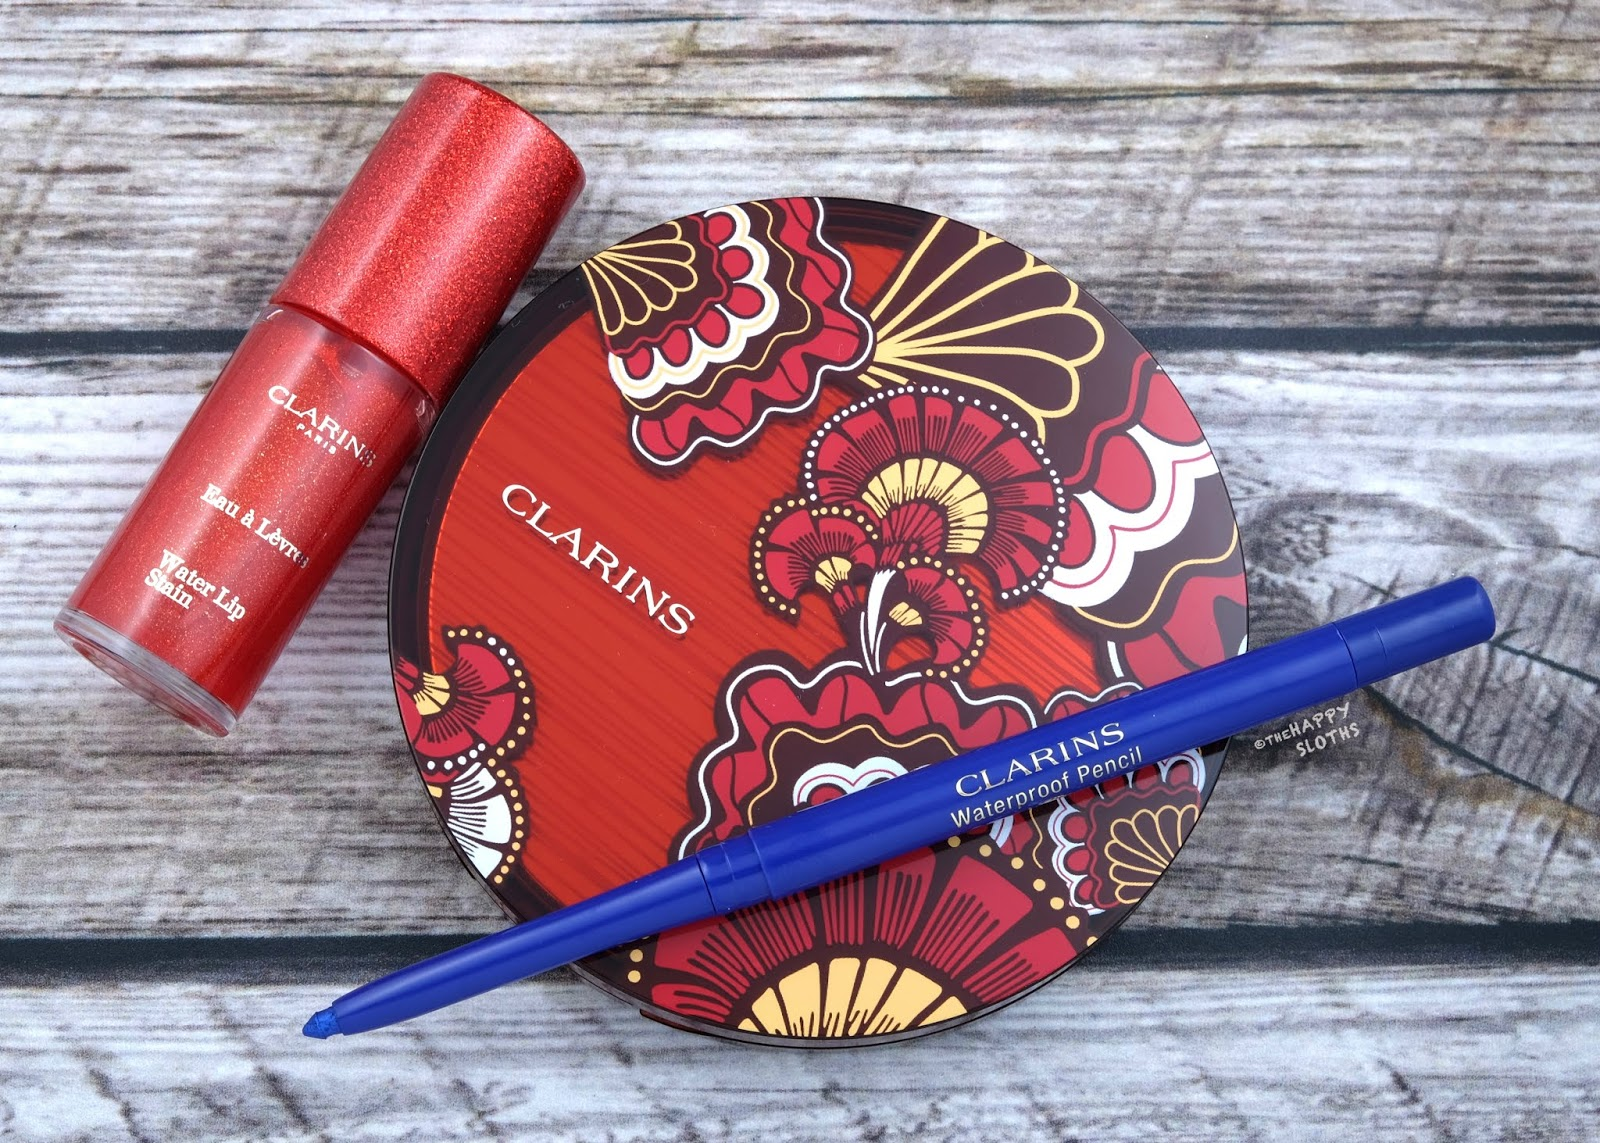 Clarins | Summer 2019 Collection: Review